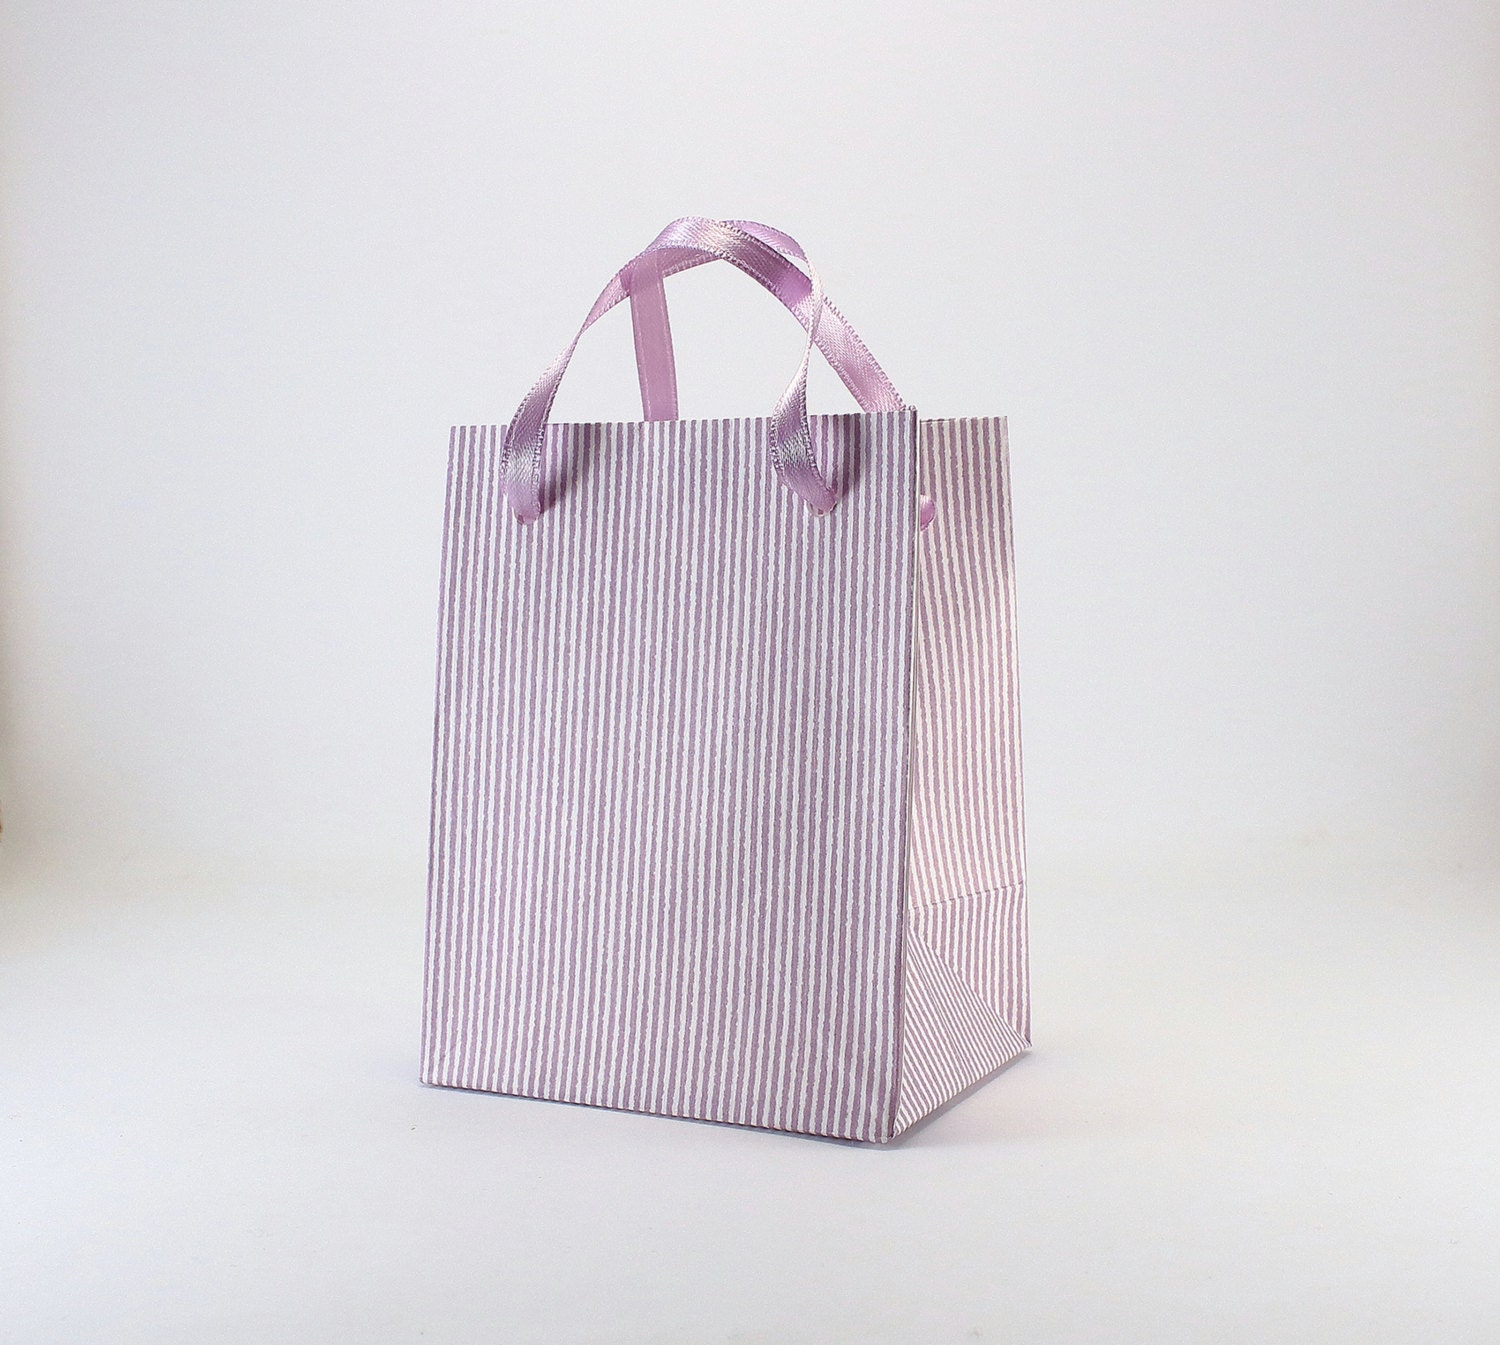 10 Extra Small Favor Bags - Purple Paper Bags with handles - Baby ...